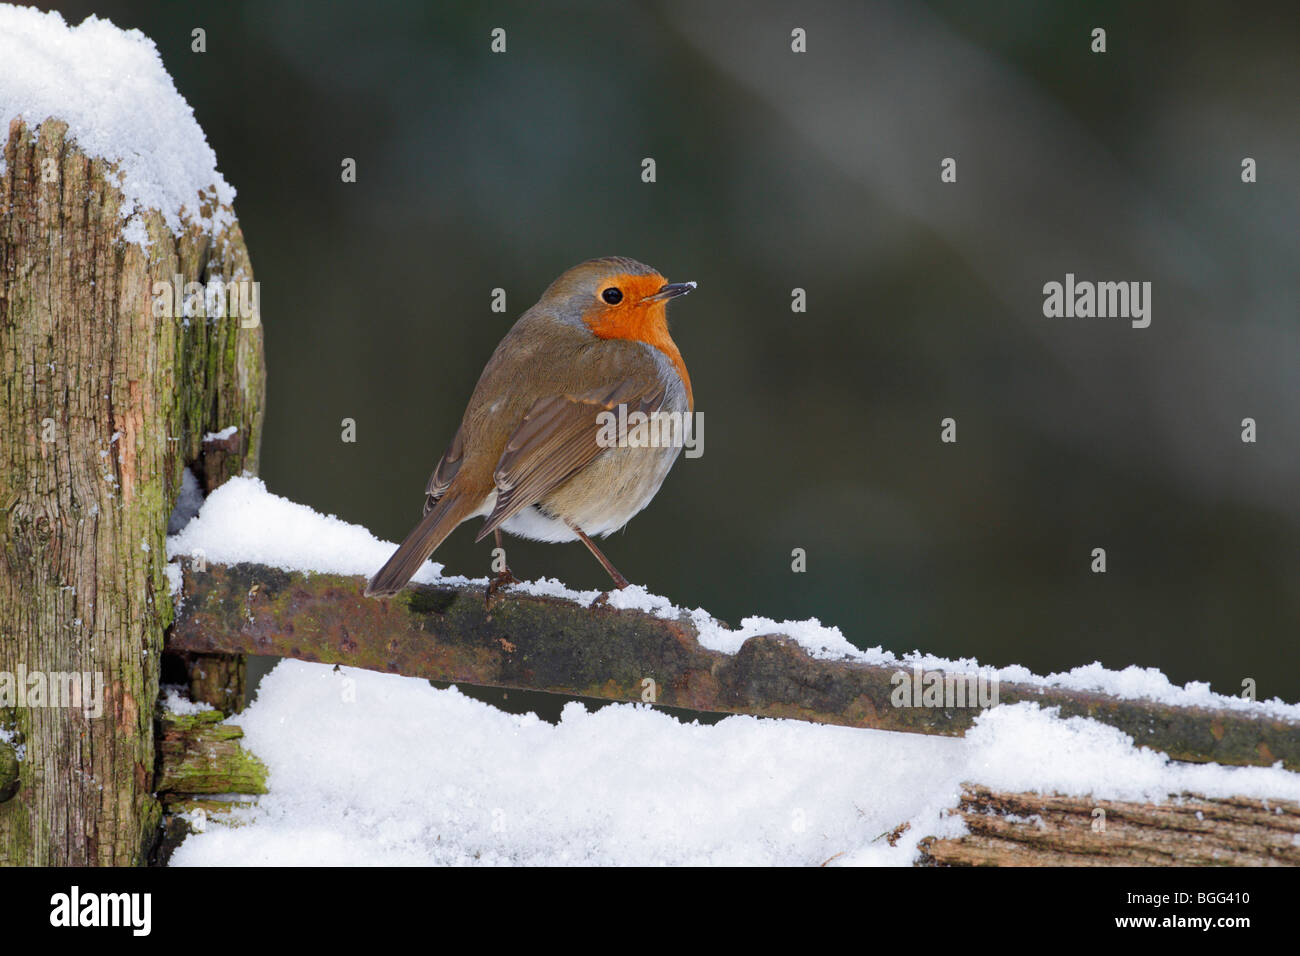 Robin Erithacus rubecula on snowy gate - Stock Image